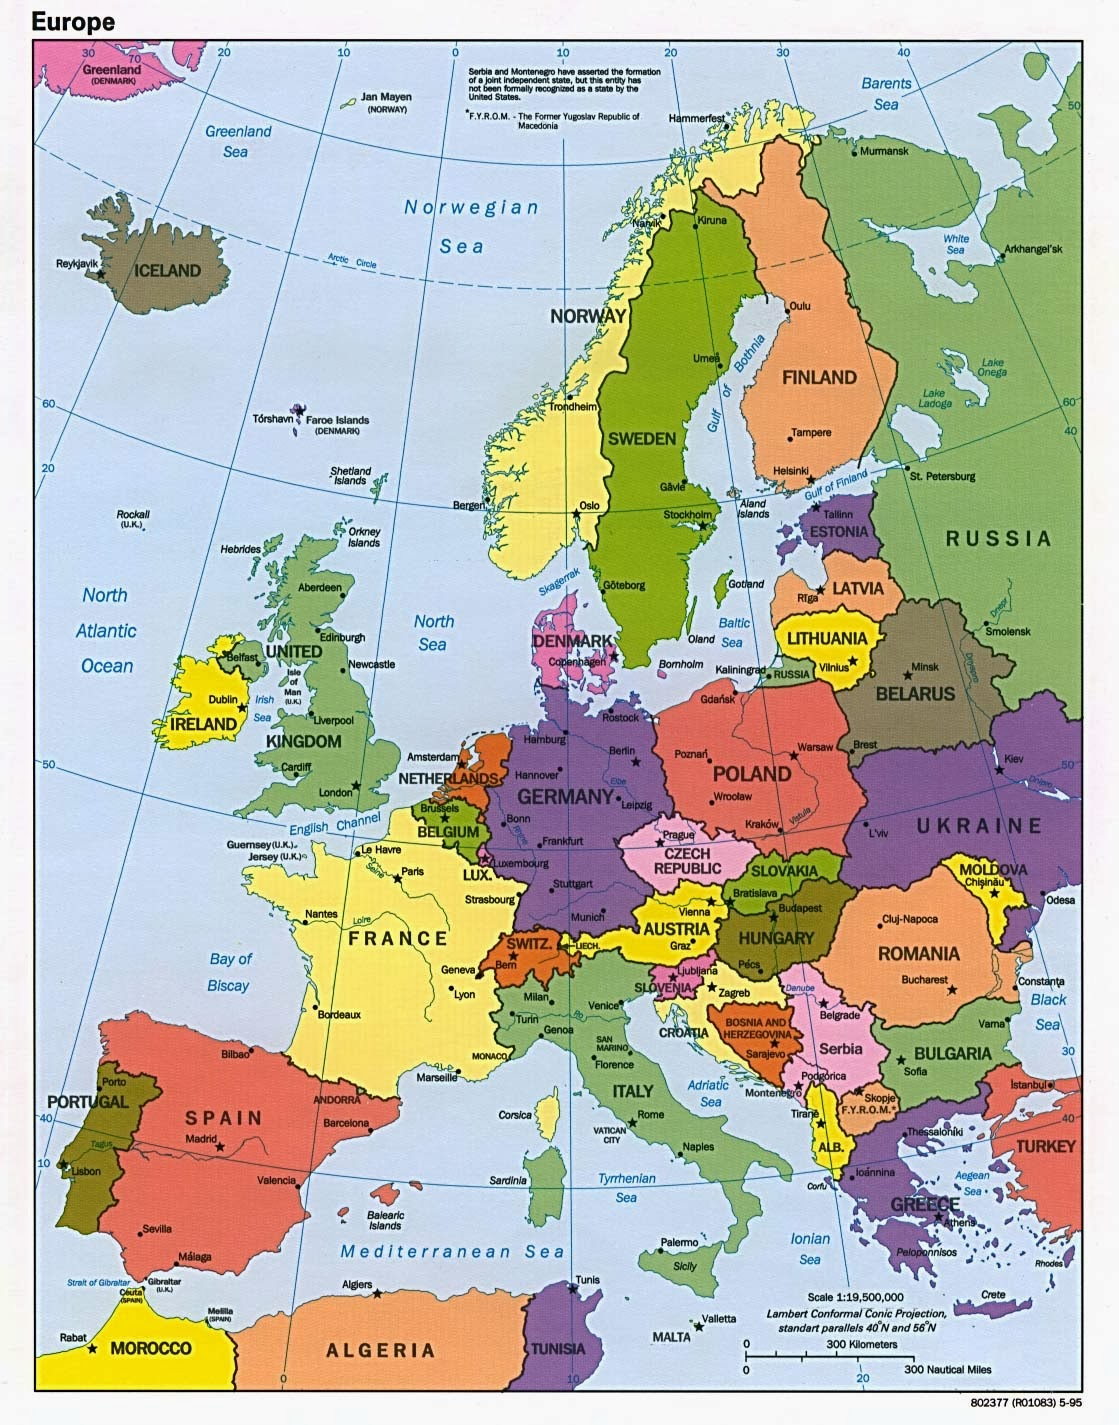 eddiedeluxe SCIENCE UNIT 10 EUROPE AND EUROPEAN UNION Interactive map